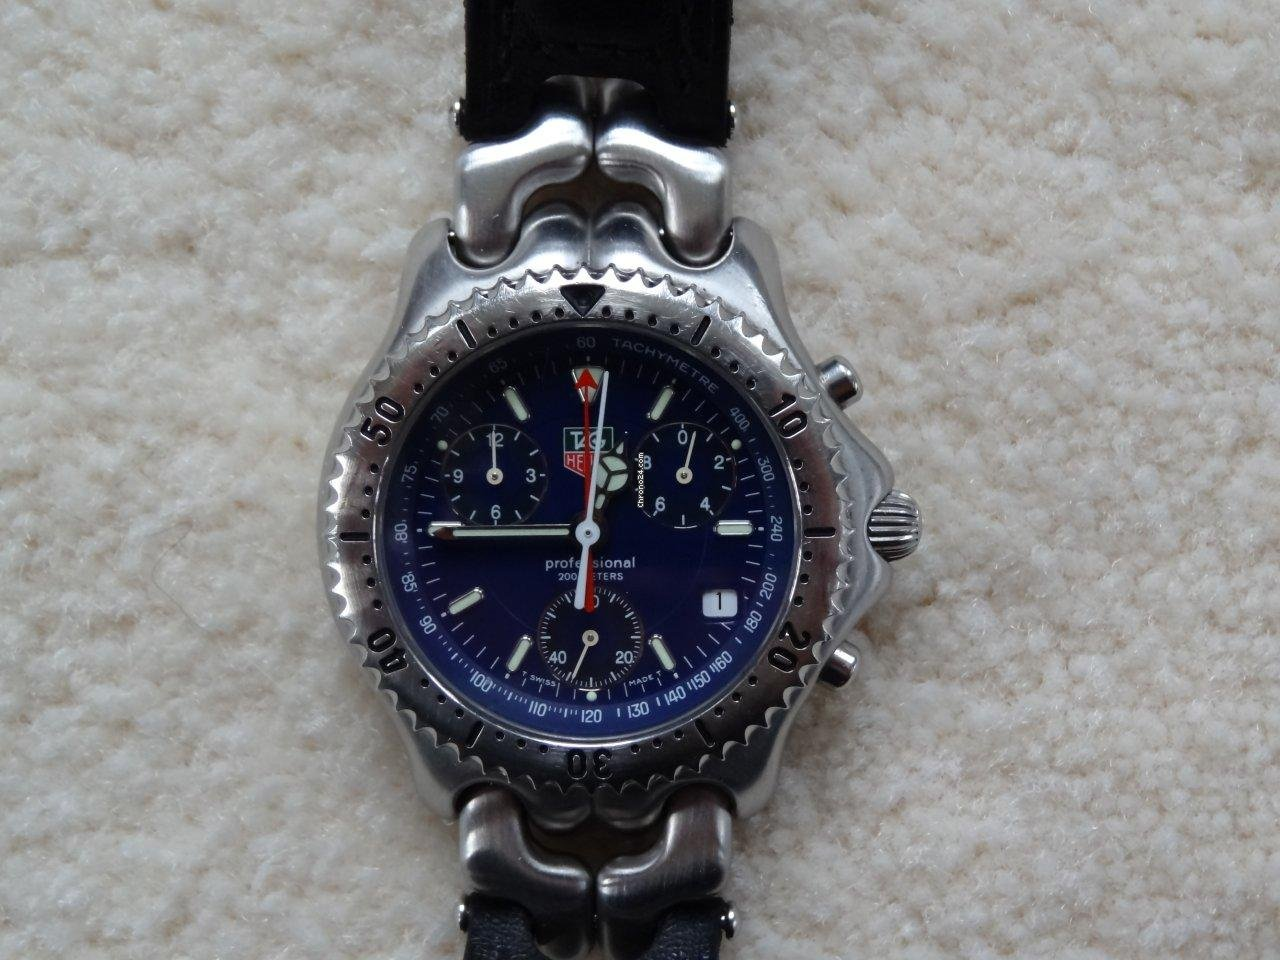 Breitling Uhr Gebraucht Tag Heuer Sel Link S/el Chronograph With Extremly Rare